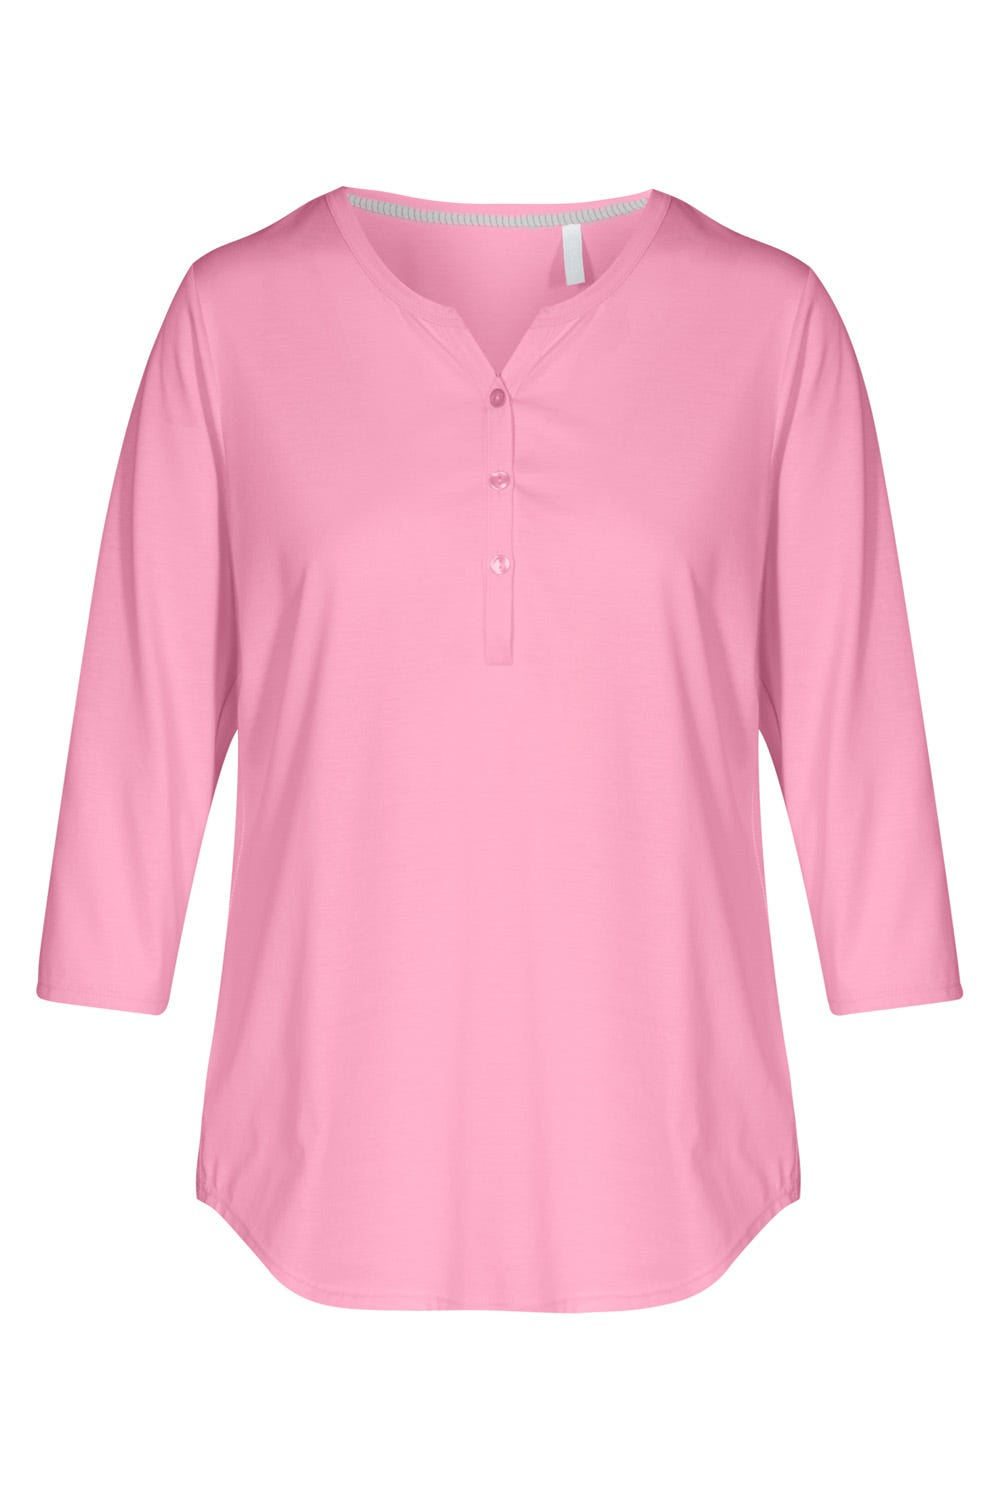 Smart Casual Basic Shirt mit 3/4-Ärmelnc1652240